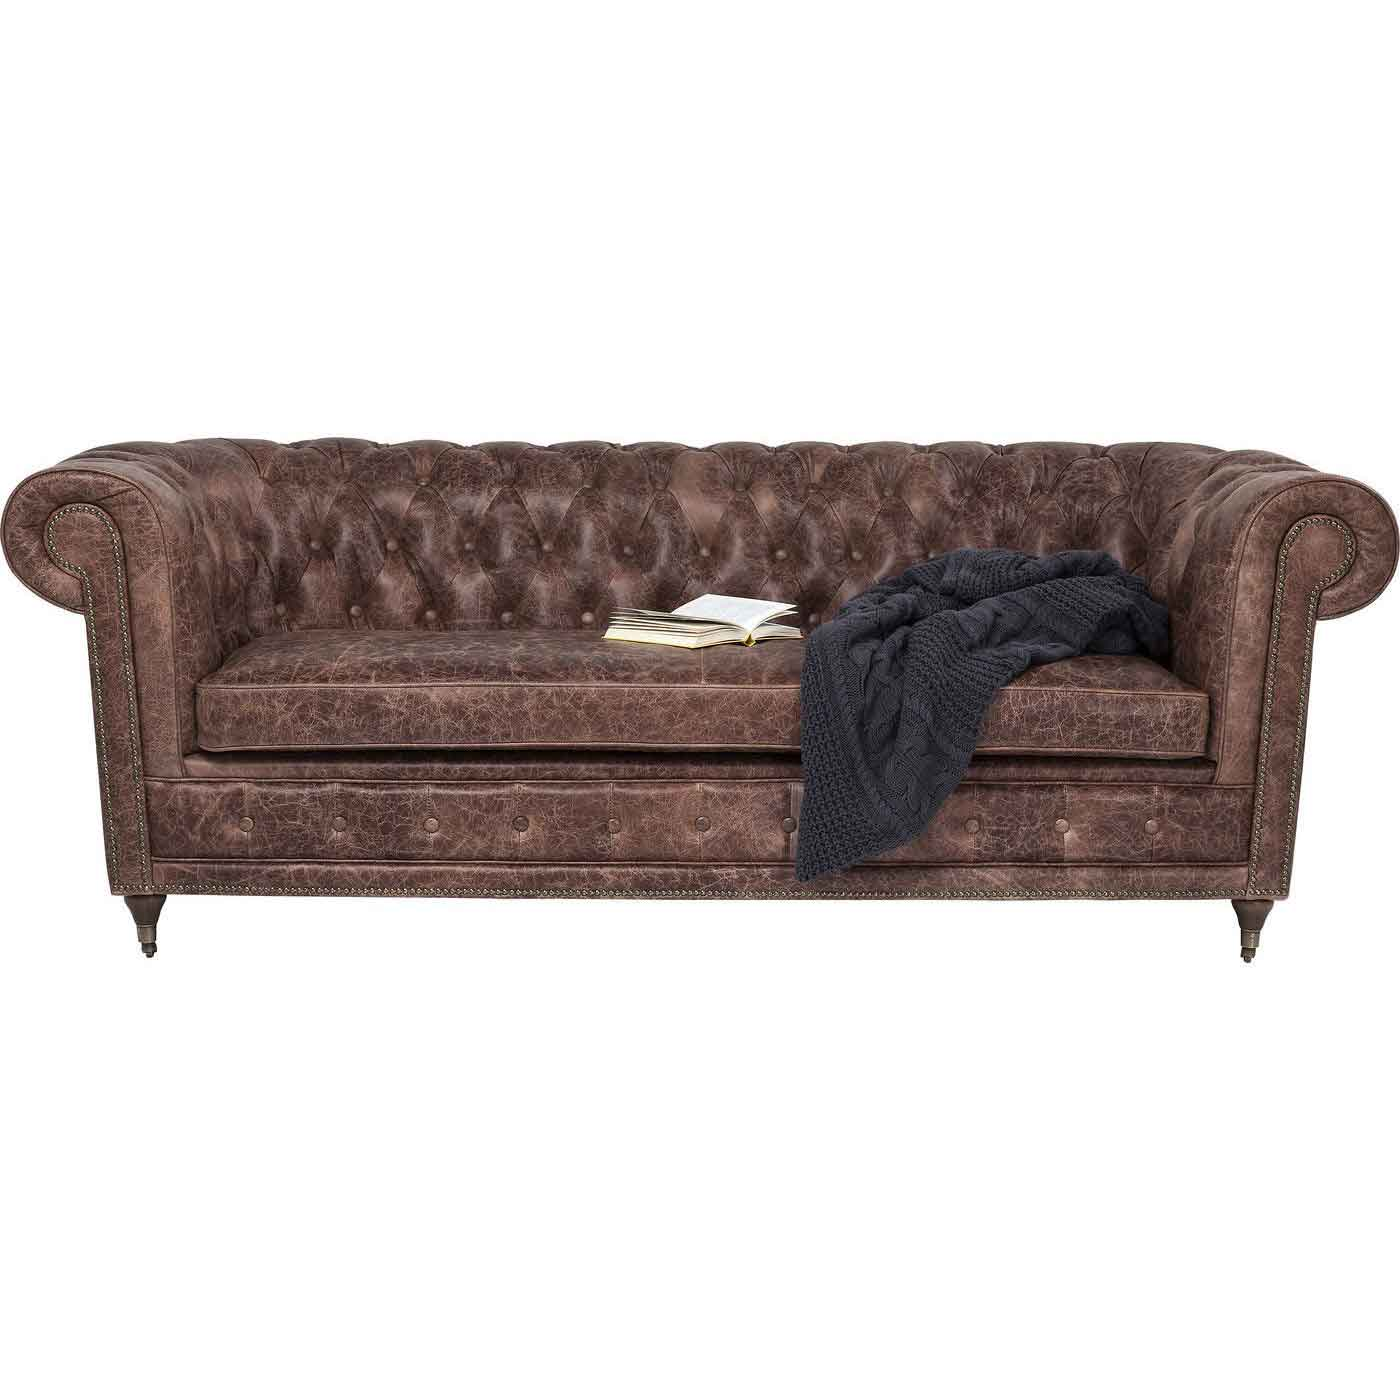 KARE DESIGN Oxford Deluxe 3 pers. chesterfield sofa - brunt naturligt læder